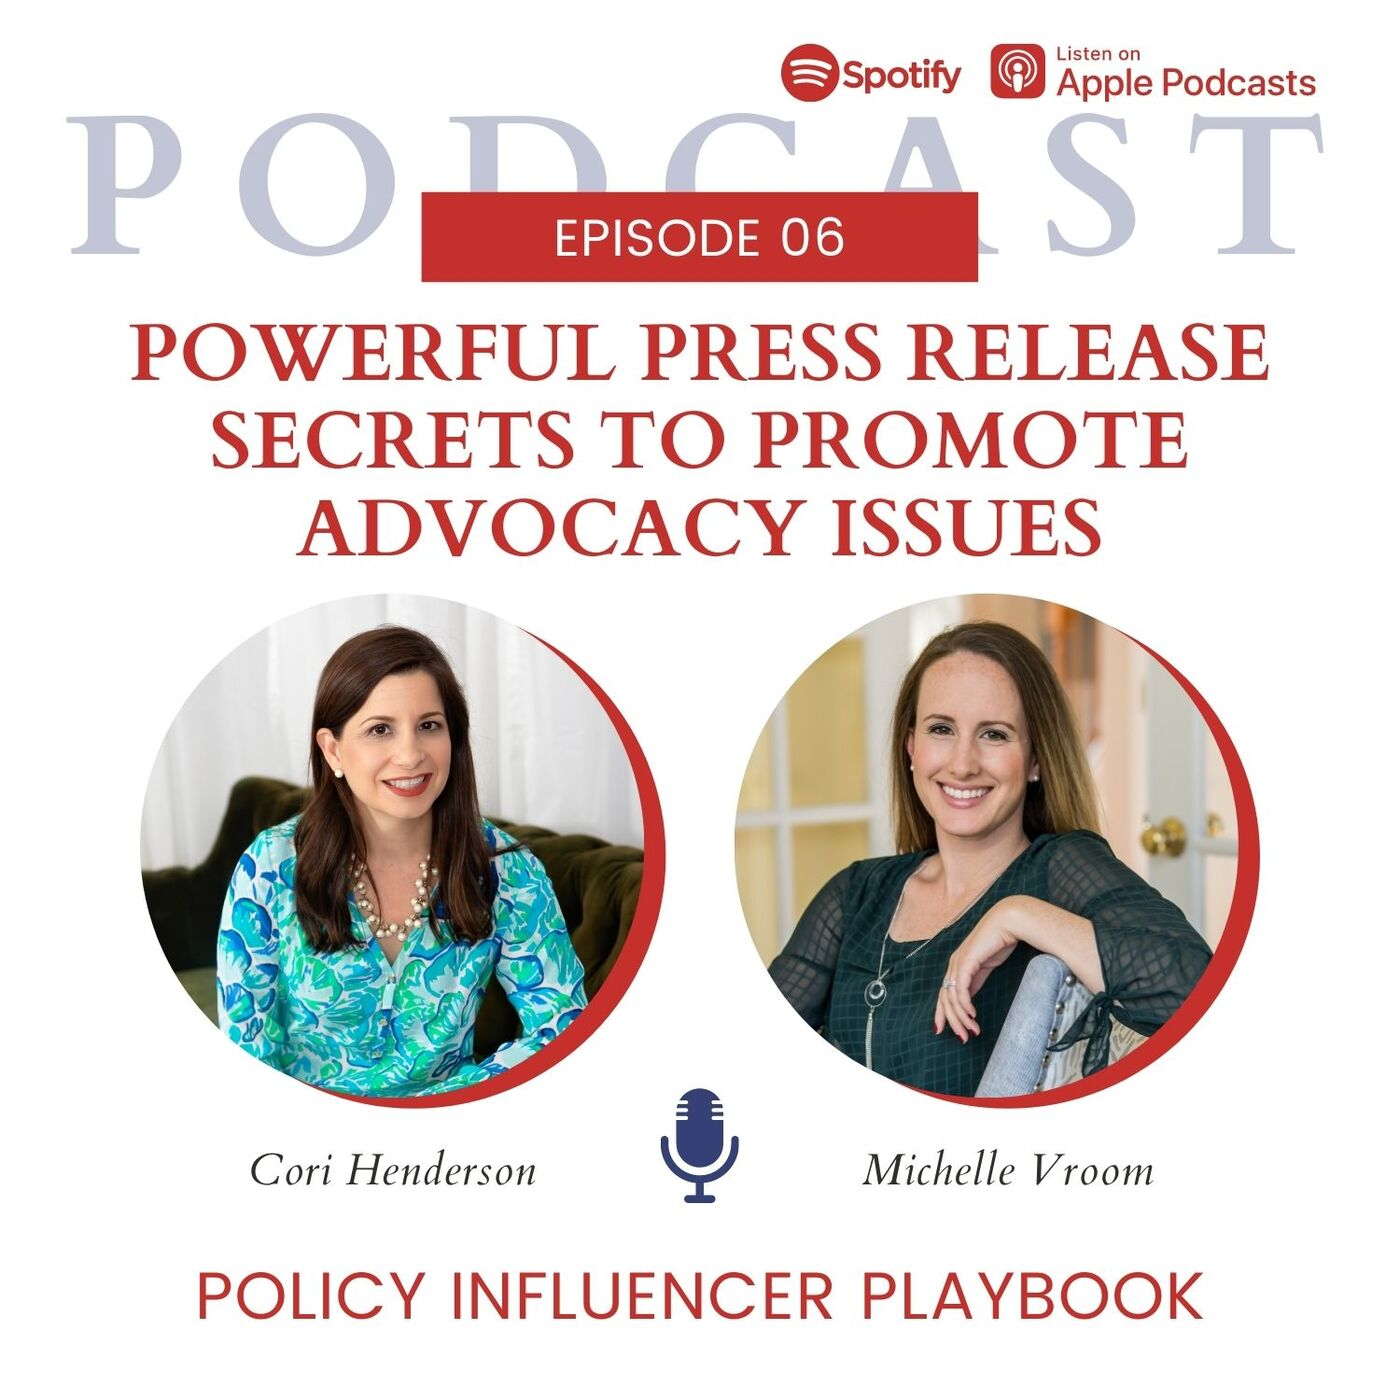 Powerful Press Release Secrets to Promote Advocacy Issues with Michelle Vroom